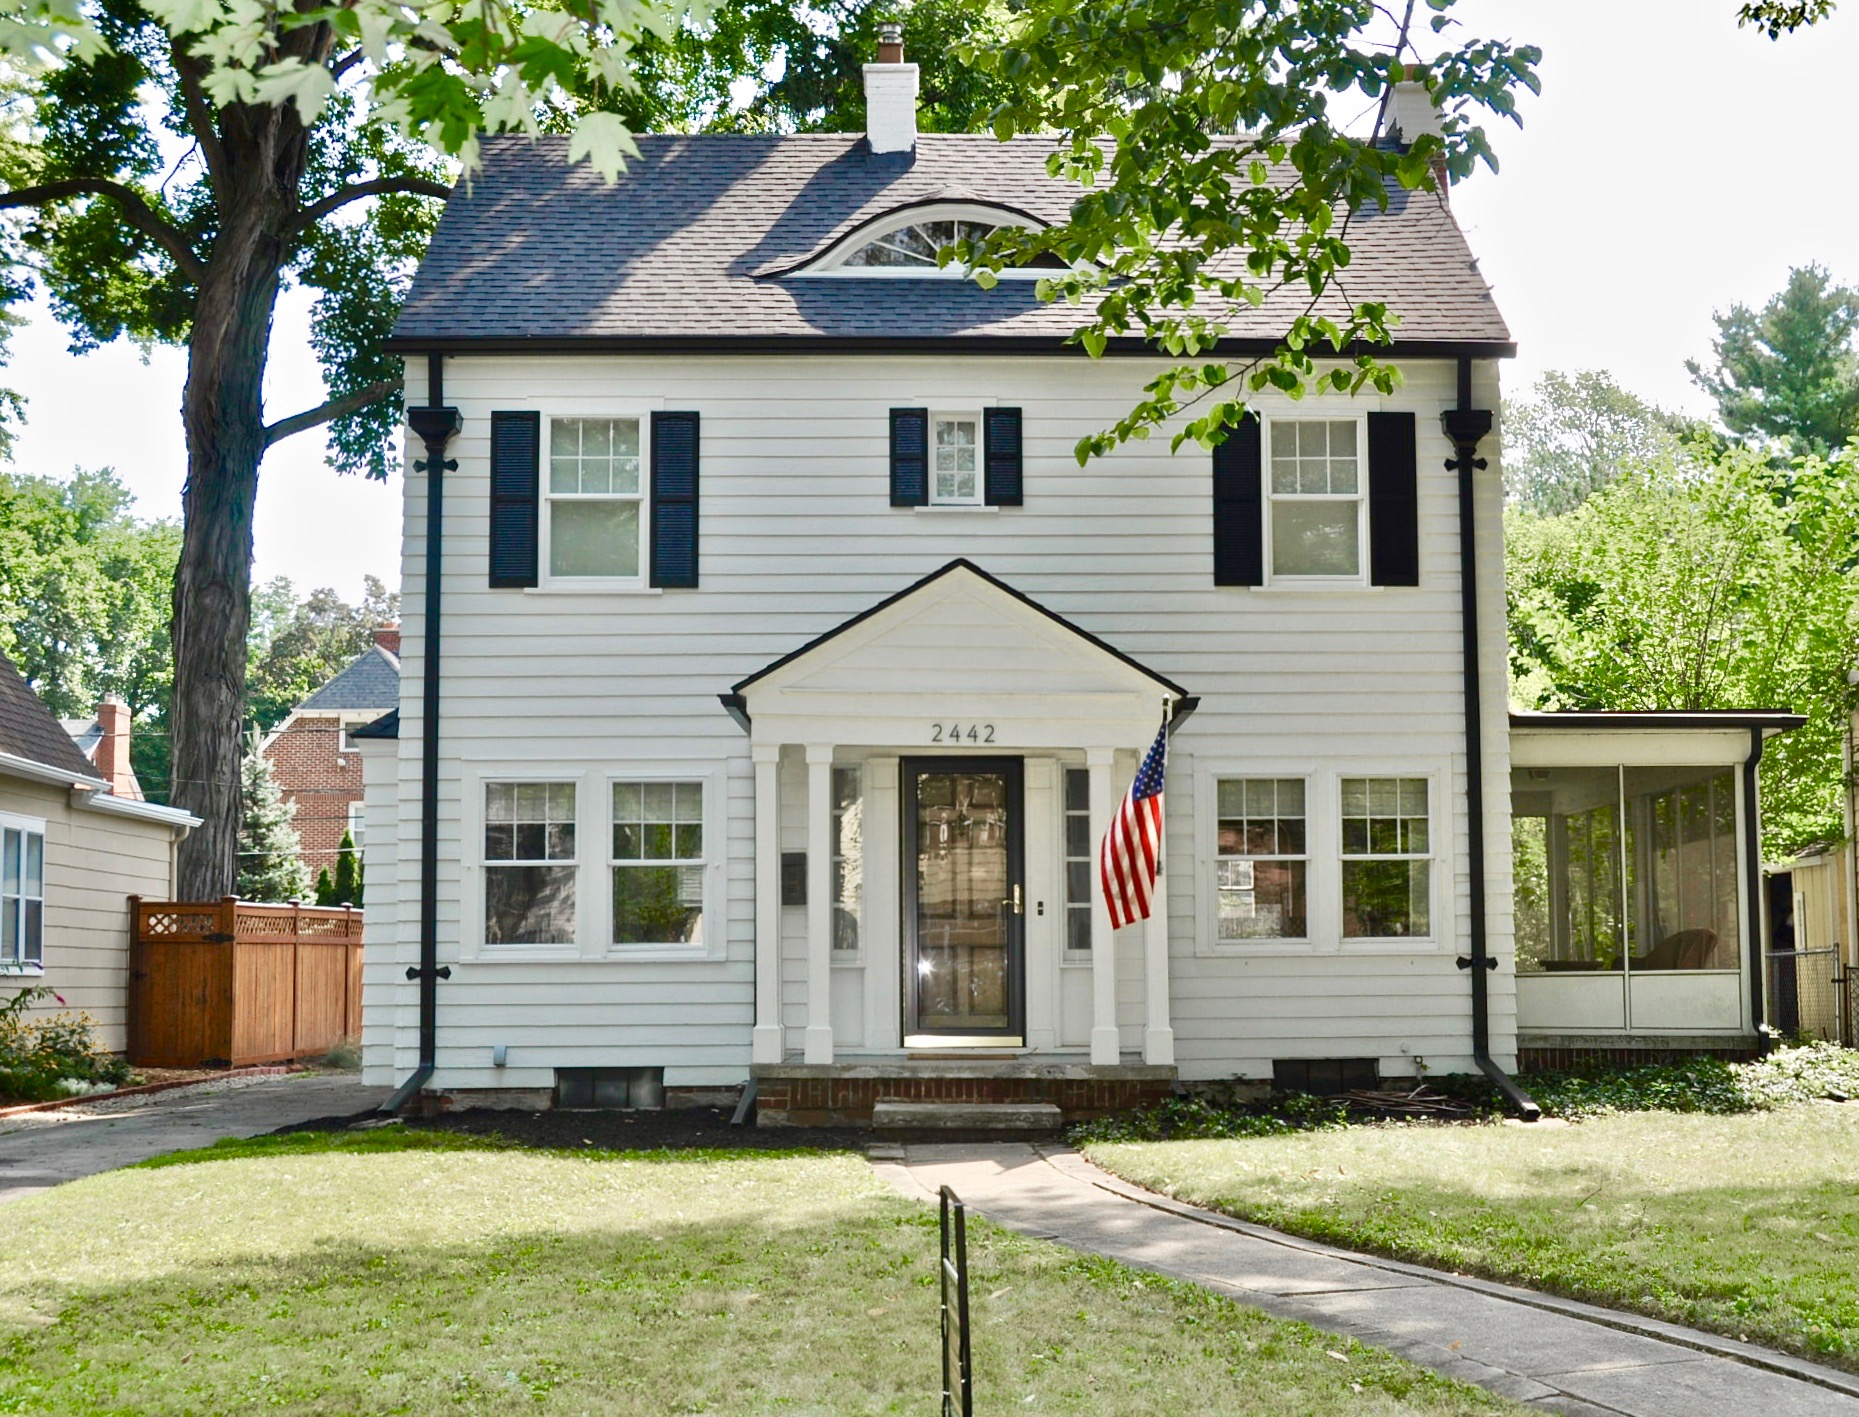 This is their gorgeous home we are selling in Old Orchard.